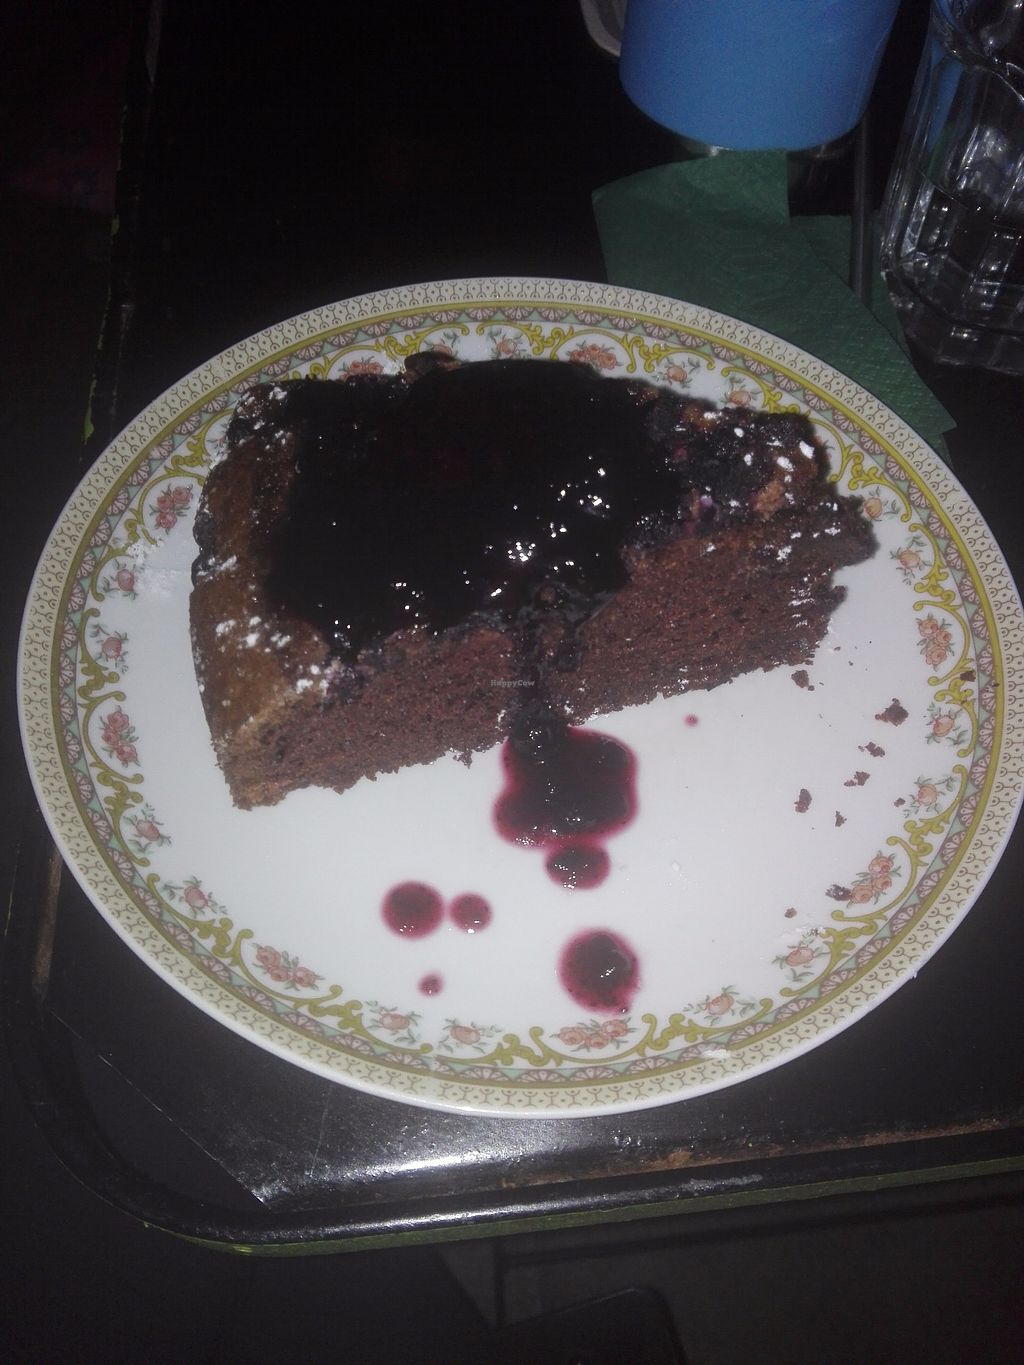 "Photo of Cafe Bar 67  by <a href=""/members/profile/ElisaGR"">ElisaGR</a> <br/>Chocolate cake with myrtle  <br/> October 31, 2017  - <a href='/contact/abuse/image/103996/320535'>Report</a>"